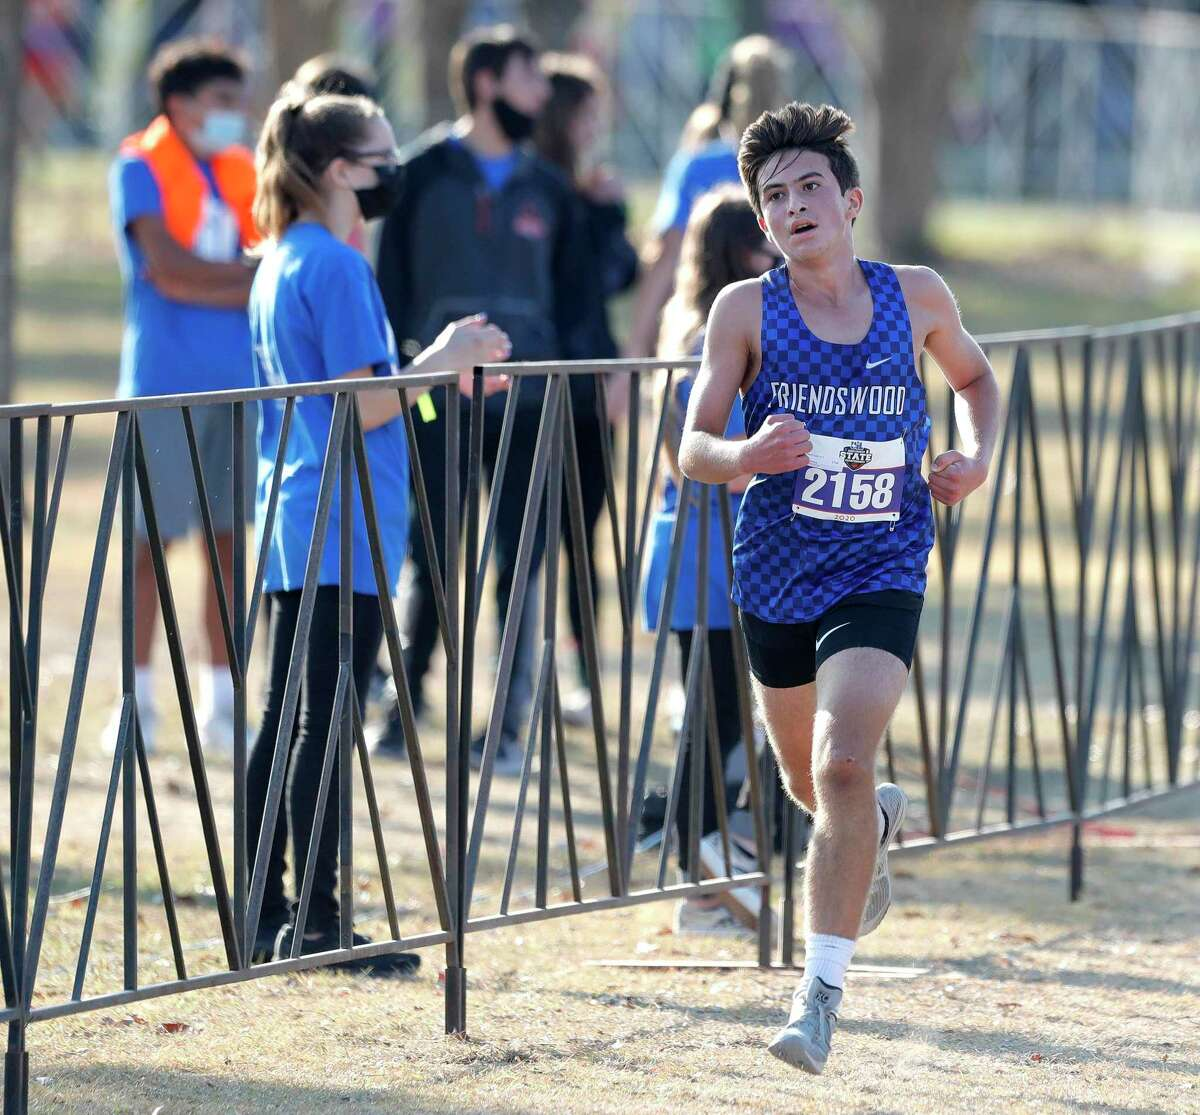 Freshman Zade Kayyali of Friendswood ran a team-best time of 15:40.37 Monday in the Class 5A race during the UIL state cross country championships at Old Settlers Park in Round Rock.